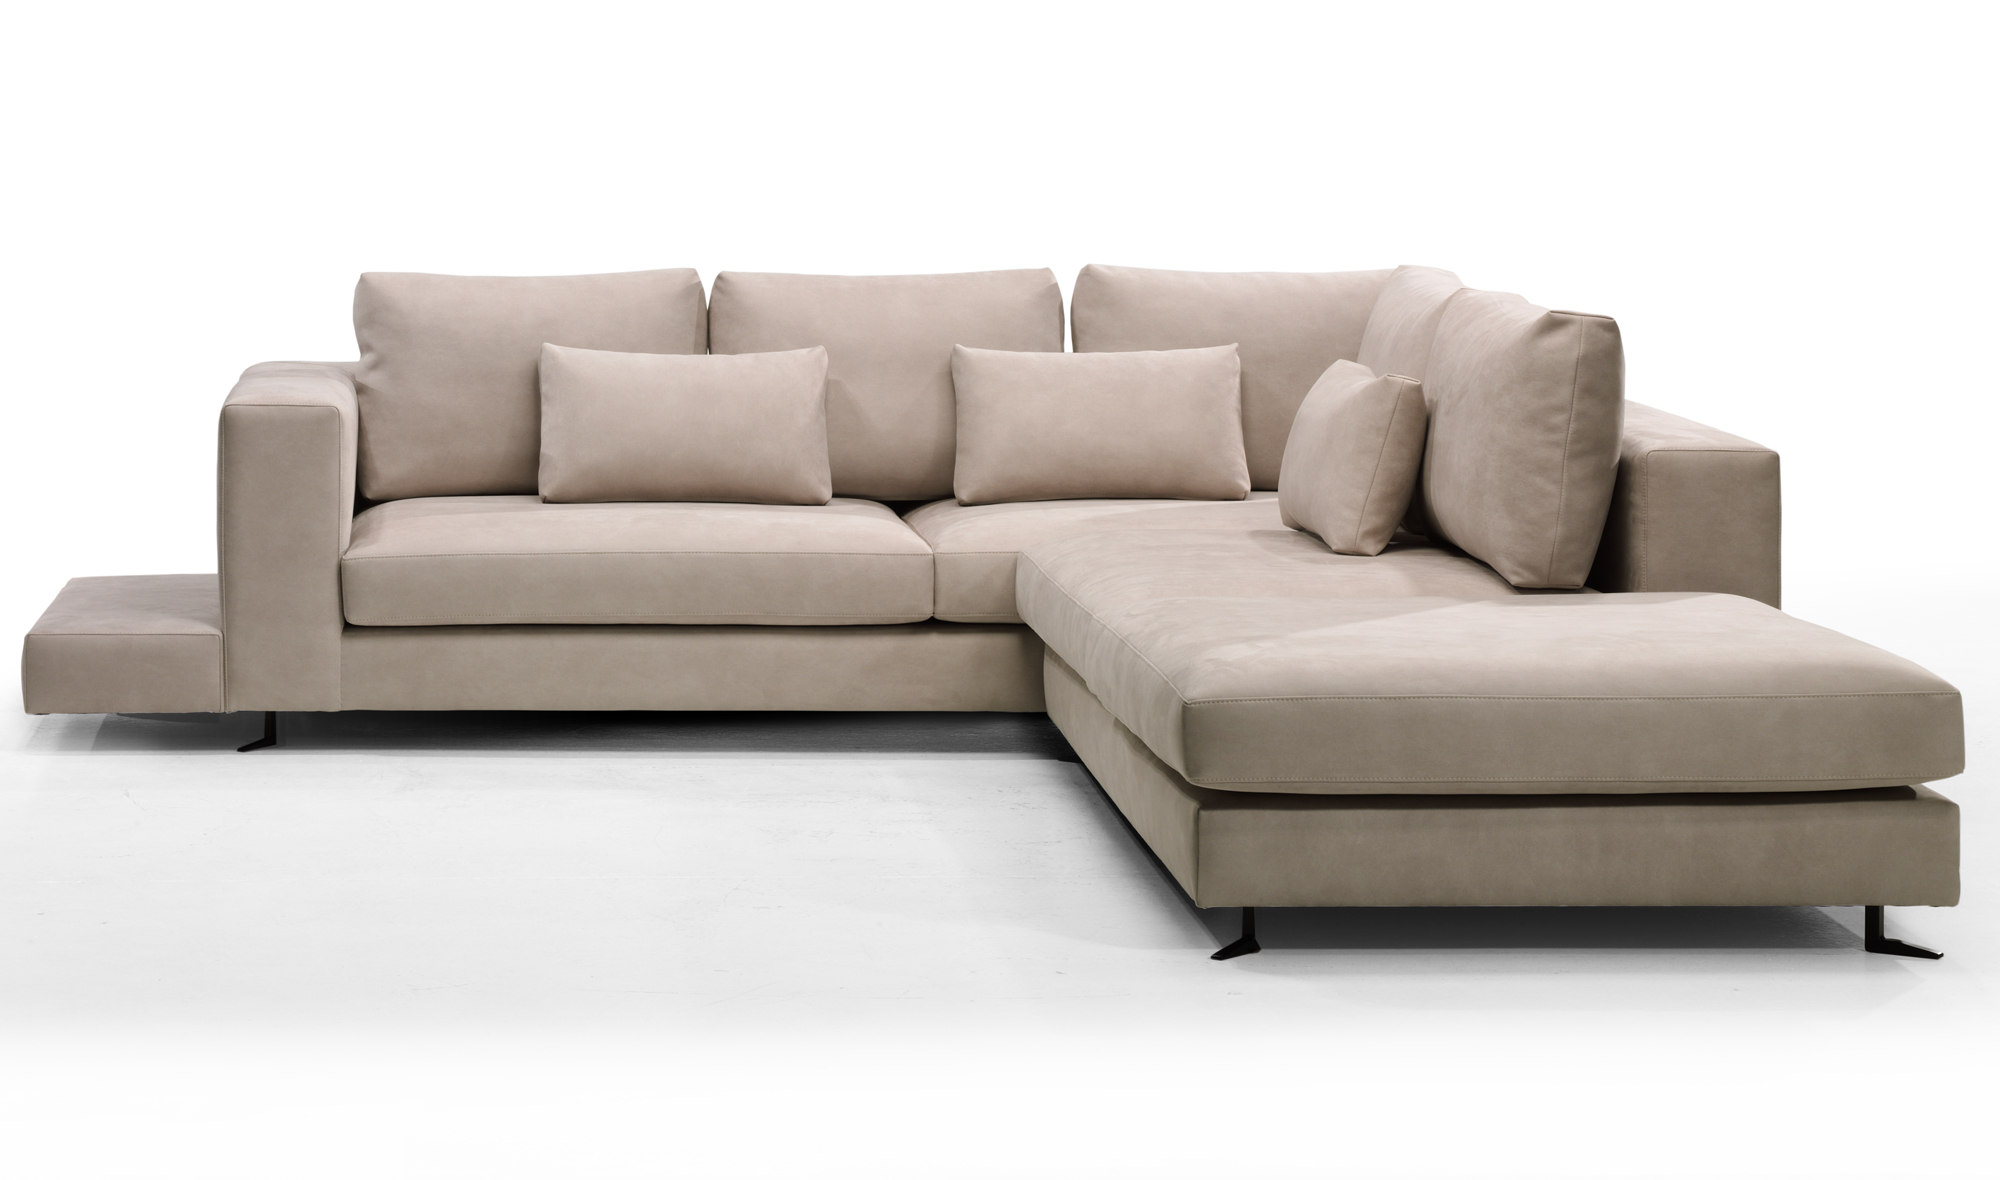 Sof rinconero con chaise longue moderno arezzo lig for Sofa con chaise longue